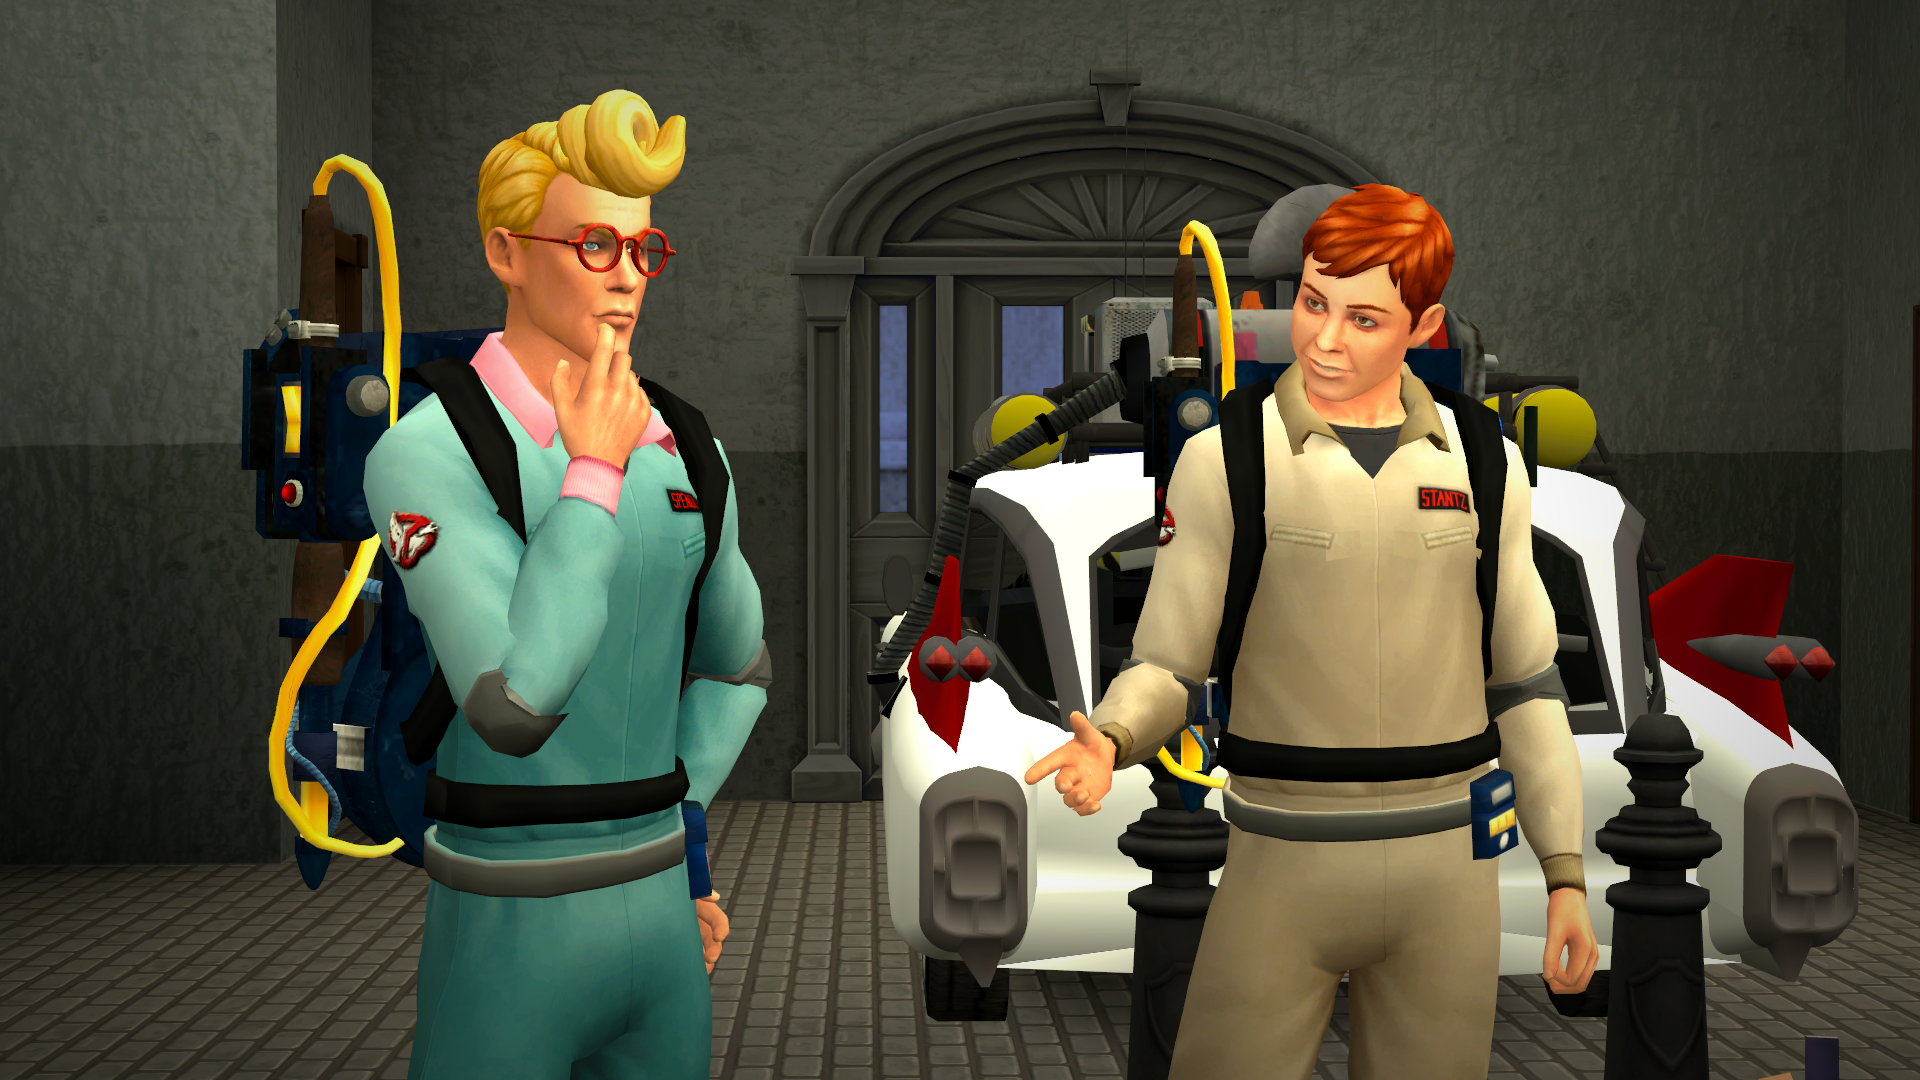 The Sims 4 Ghostbusters